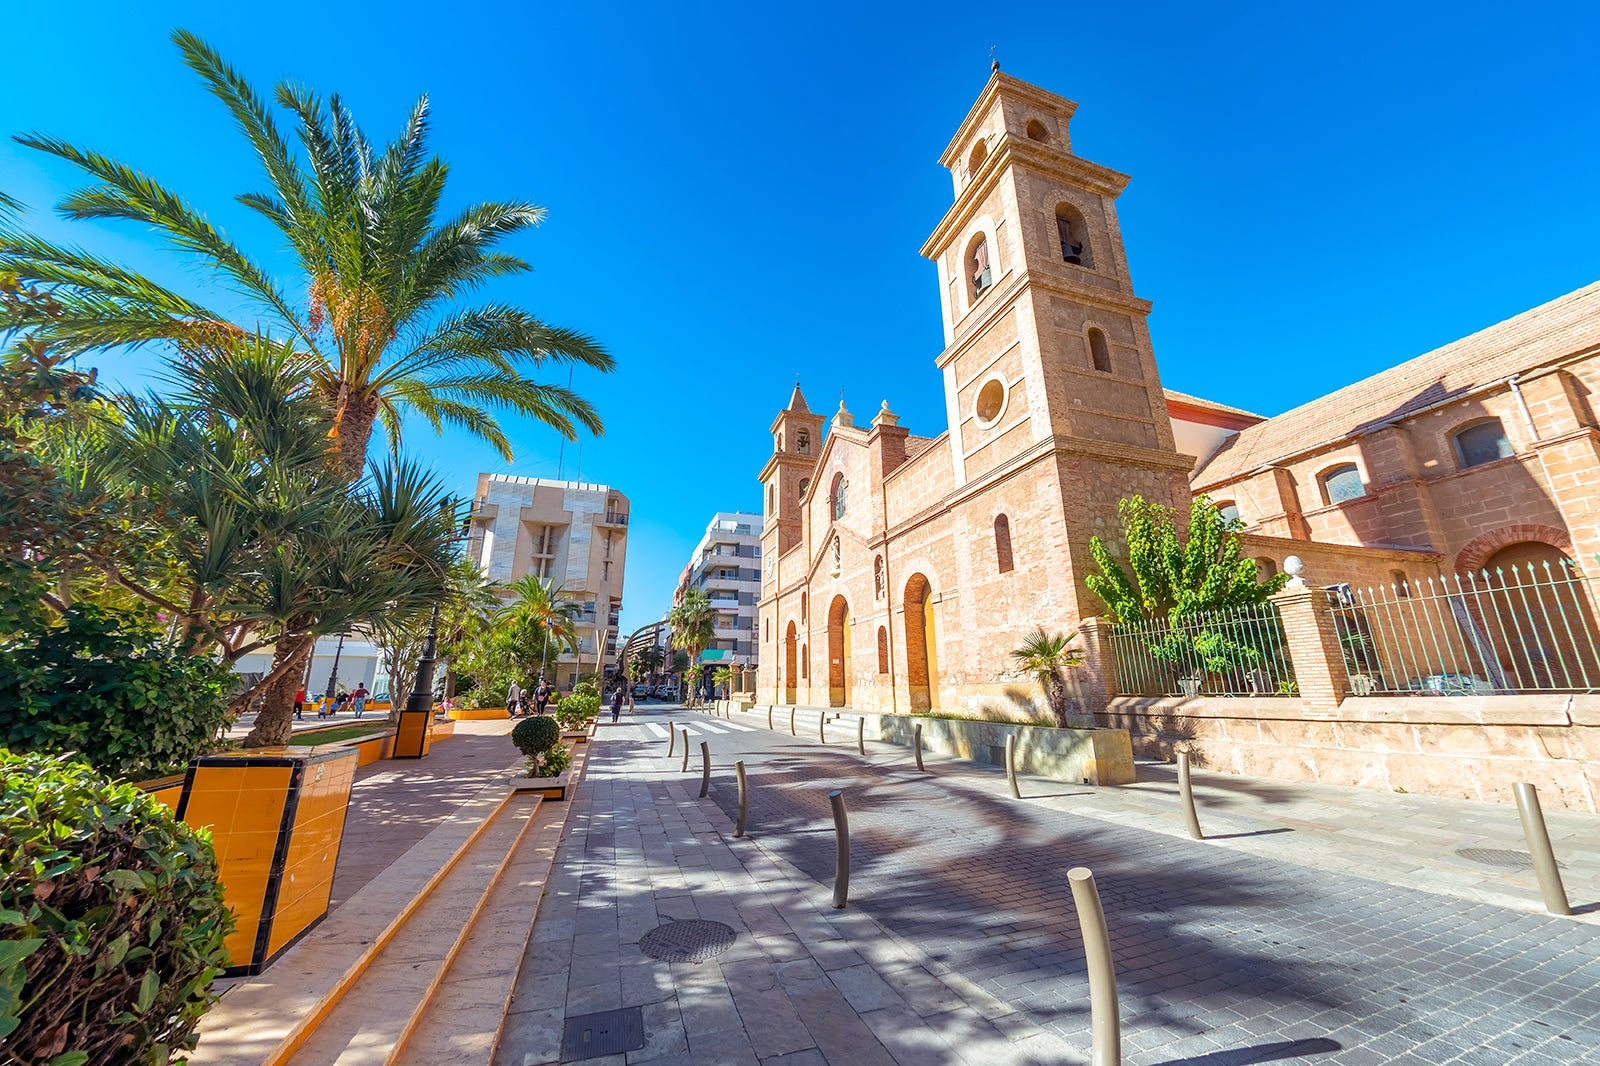 10 Best Things to Do in Torrevieja - What is Torrevieja Best Known For?